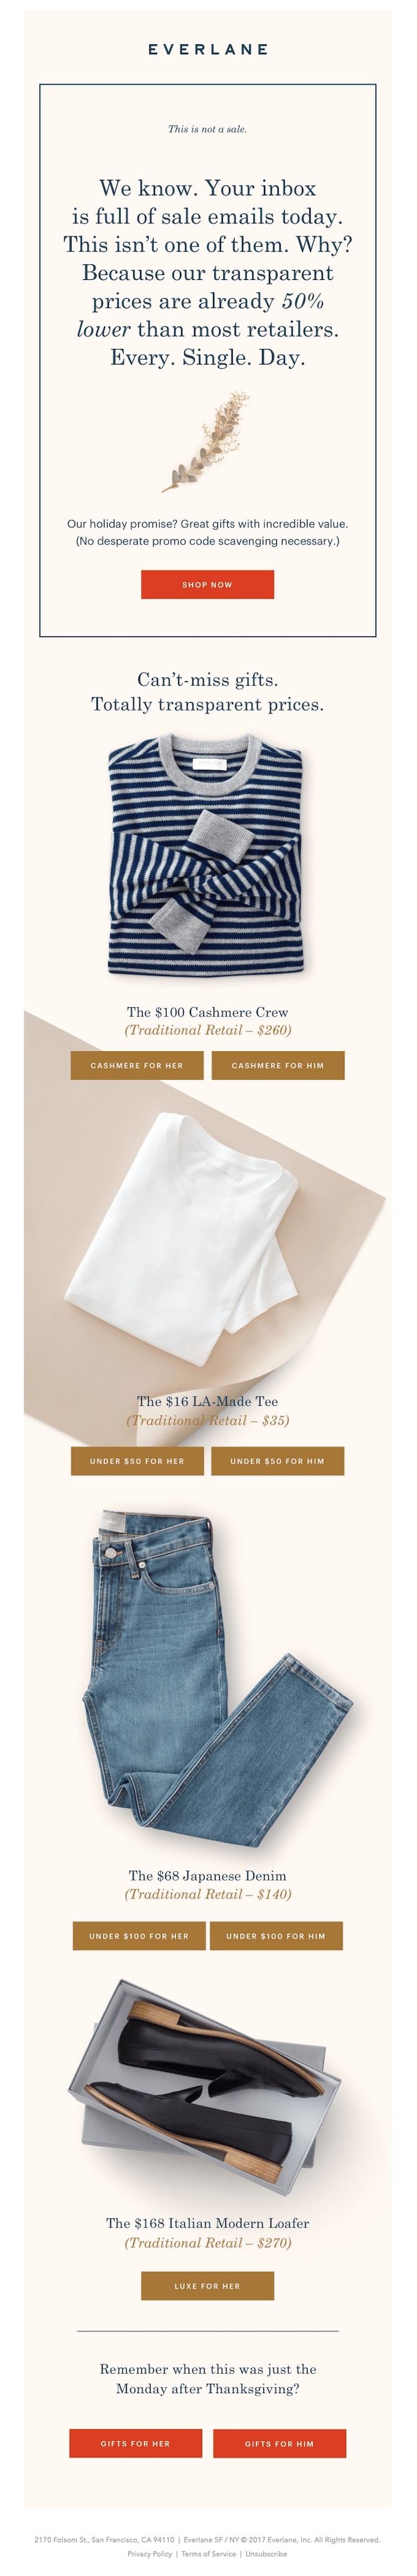 everlane anti-cyber monday email